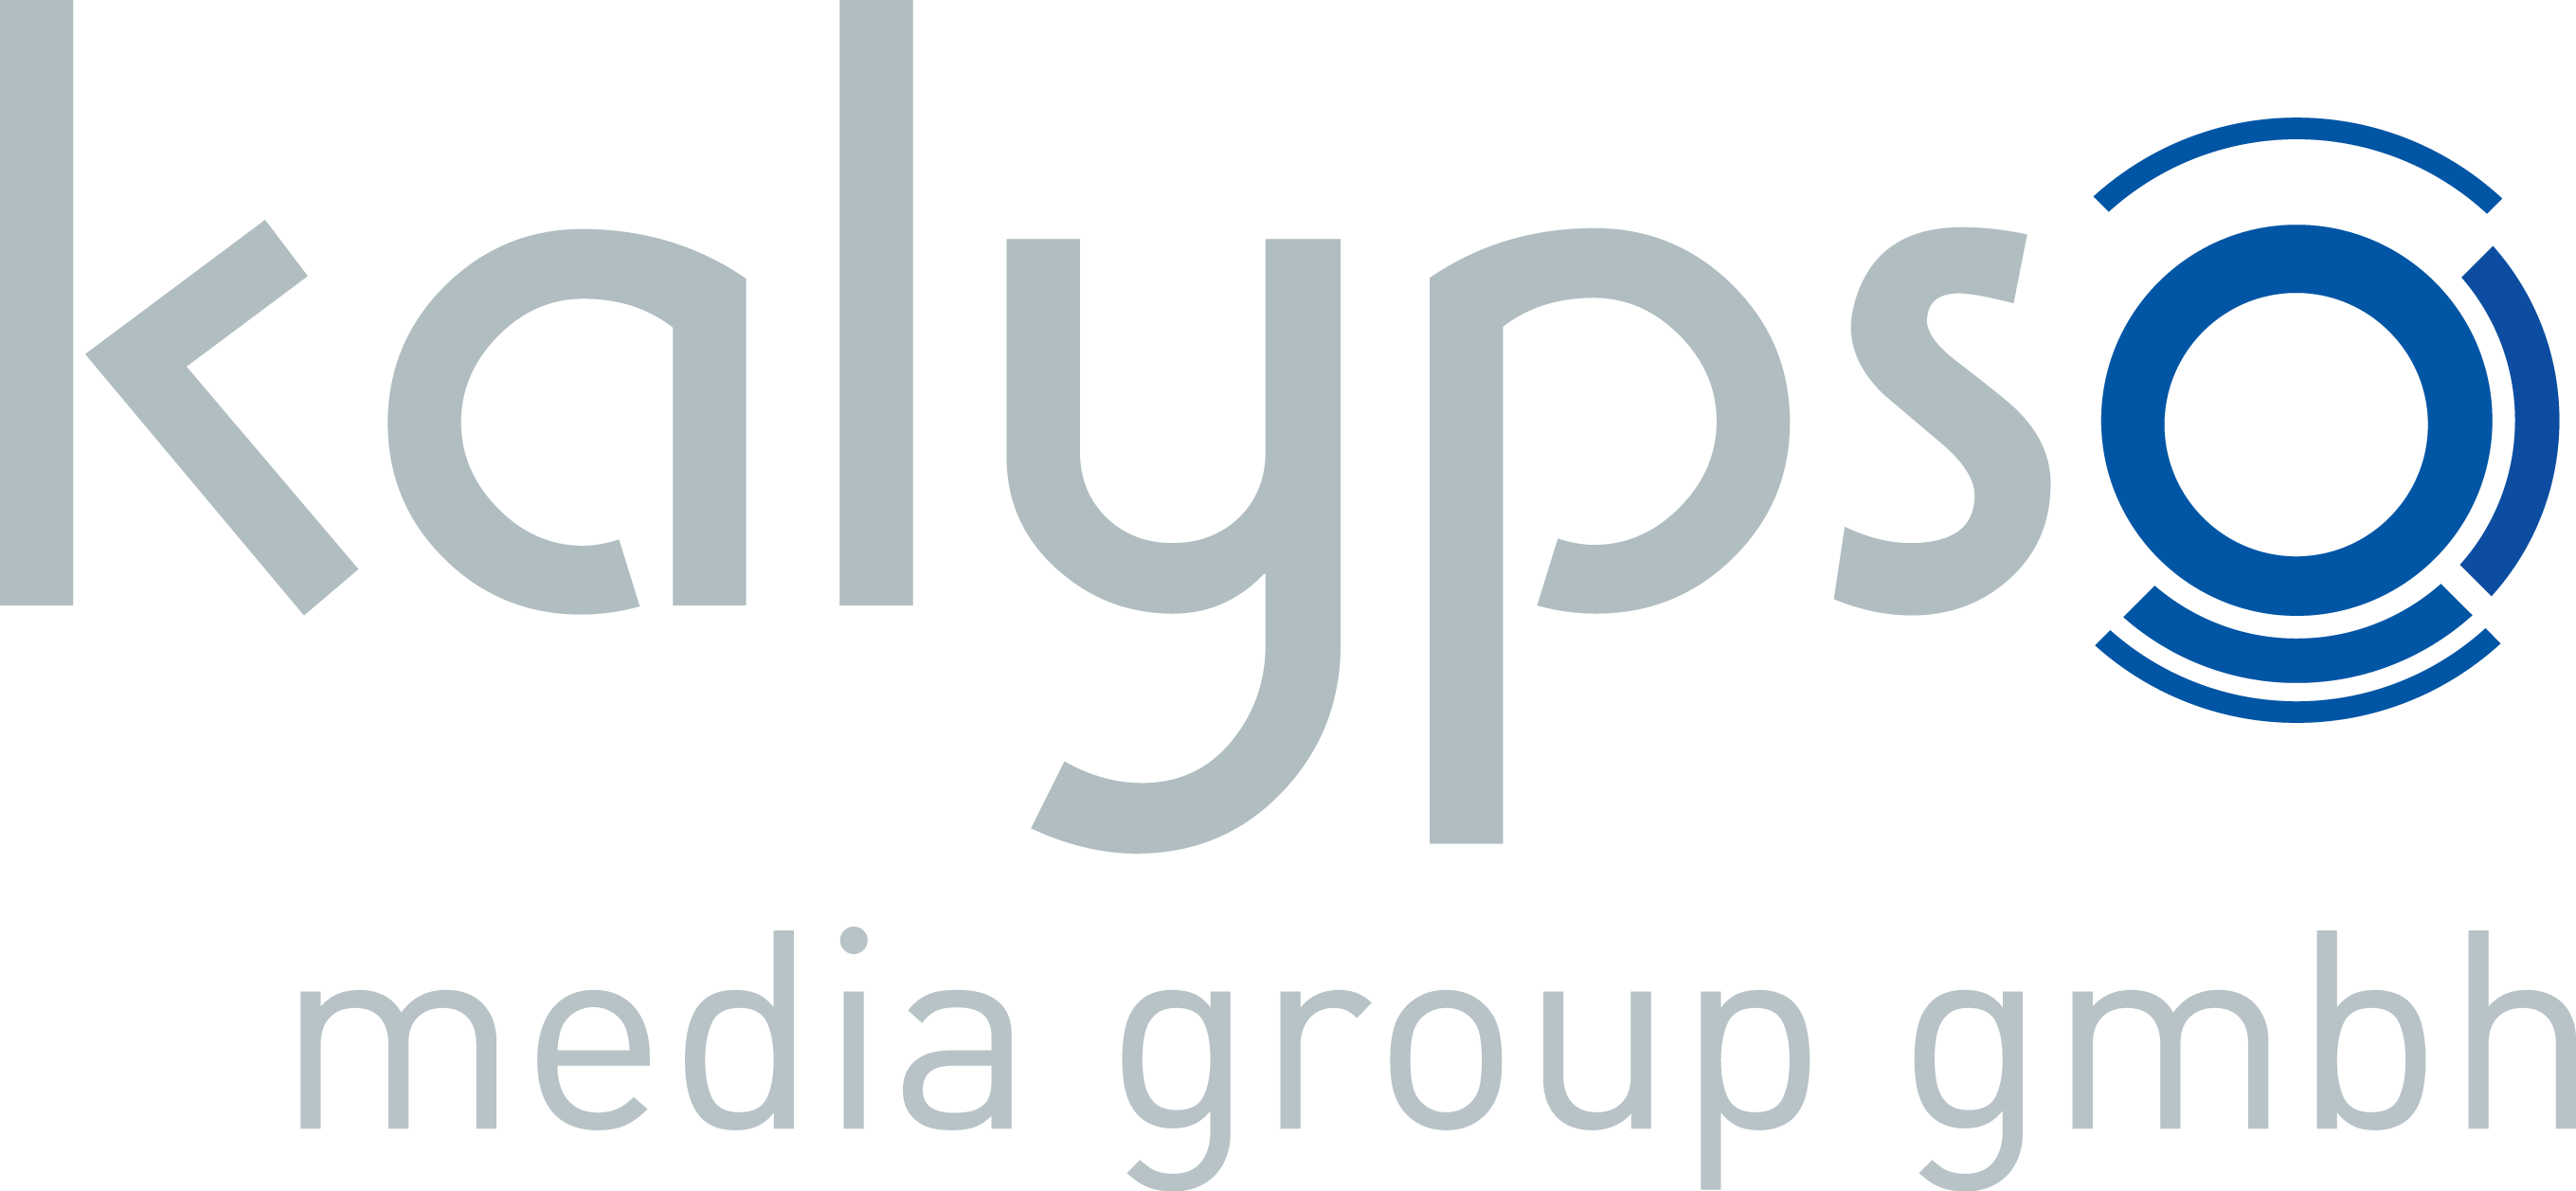 kalypso-media-group__logo592406a4baa27